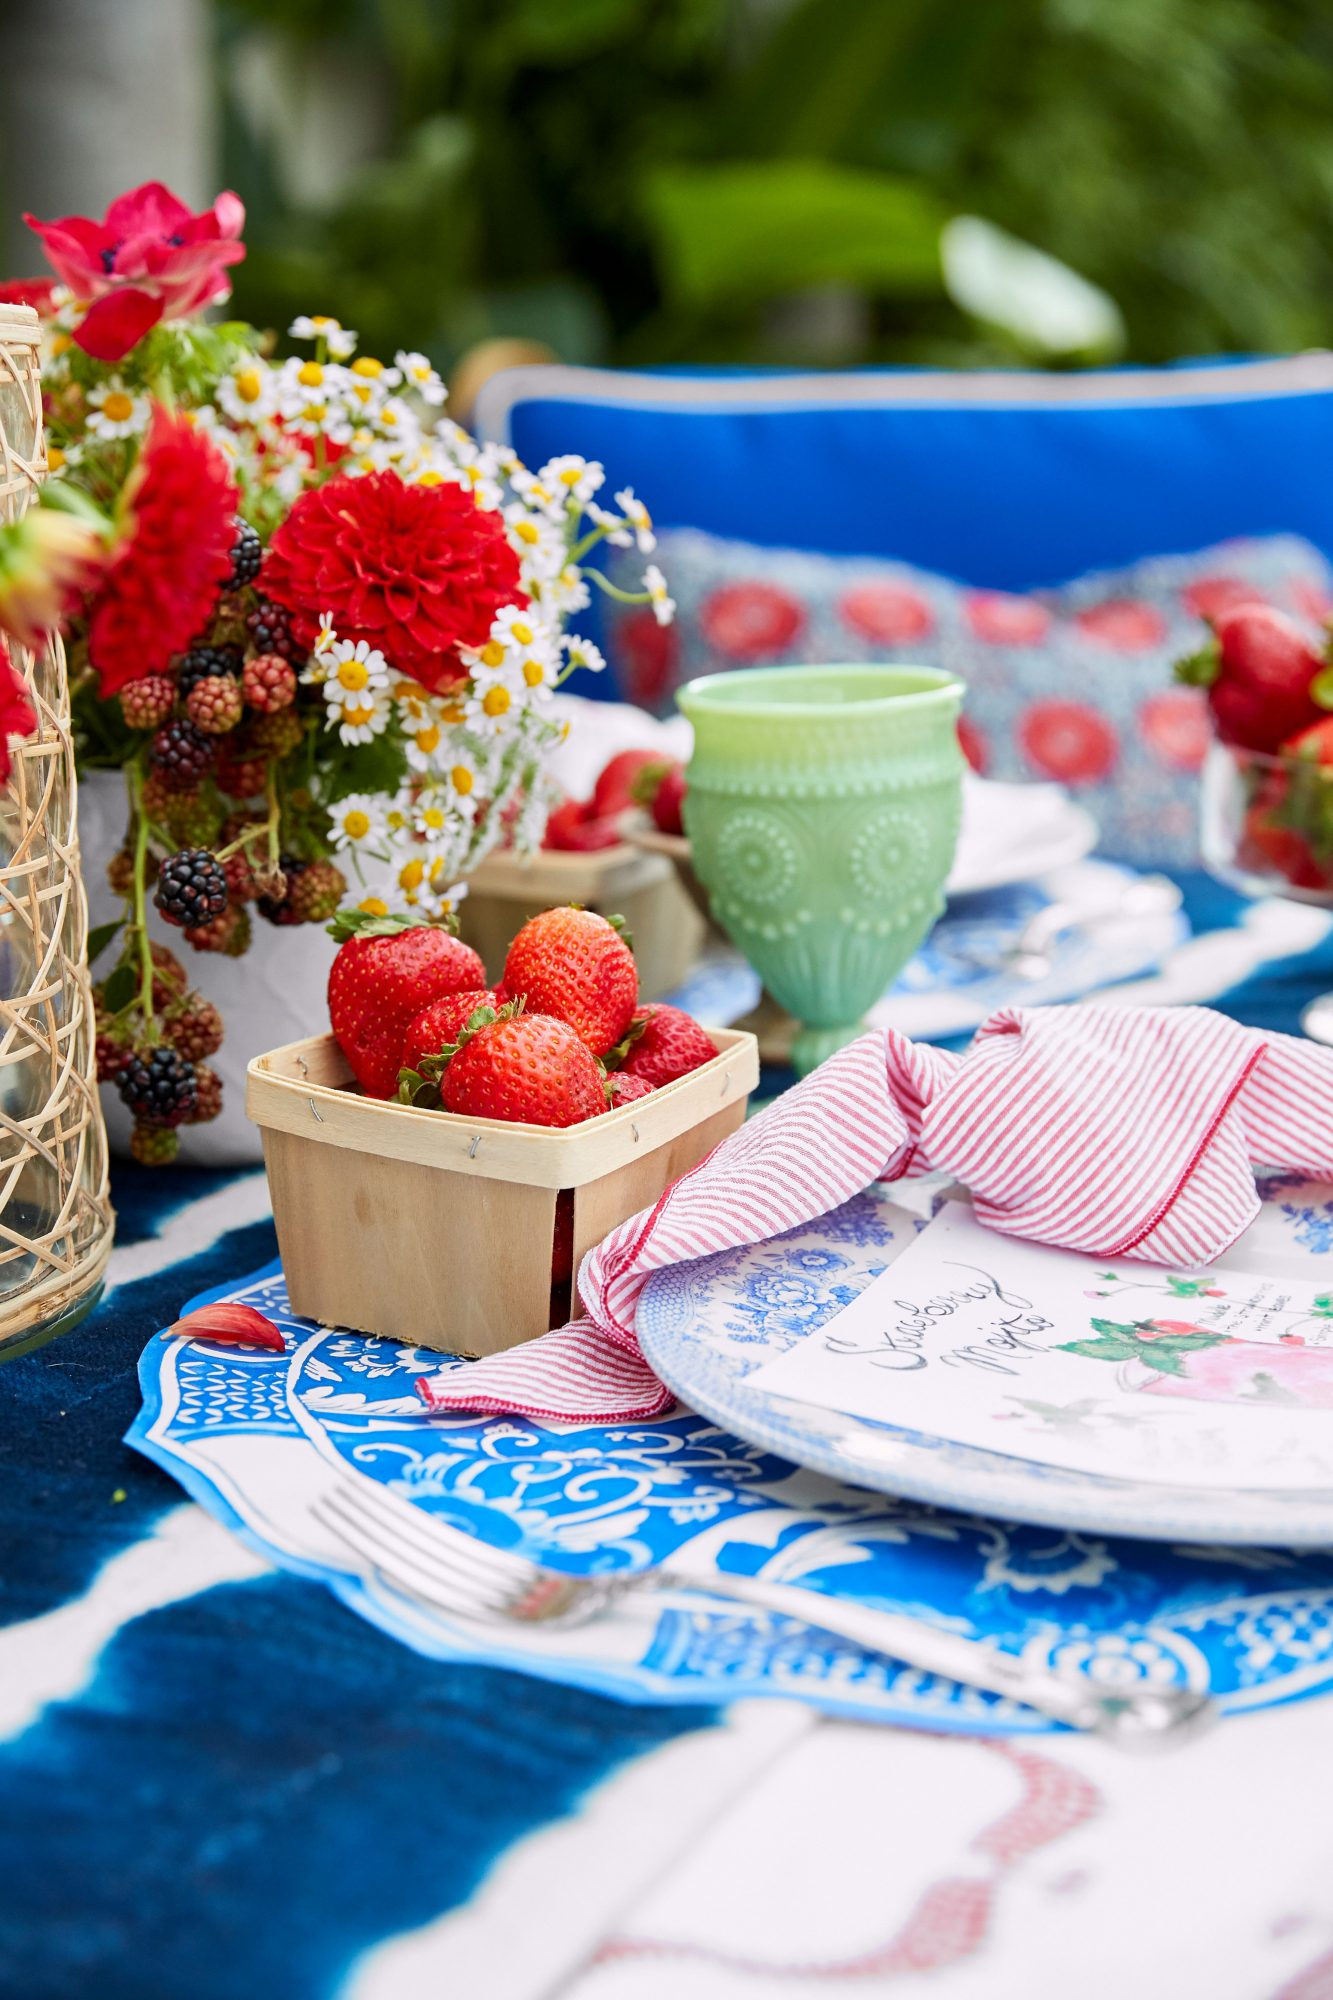 4th of July Party Table Setting with Fresh Strawberries